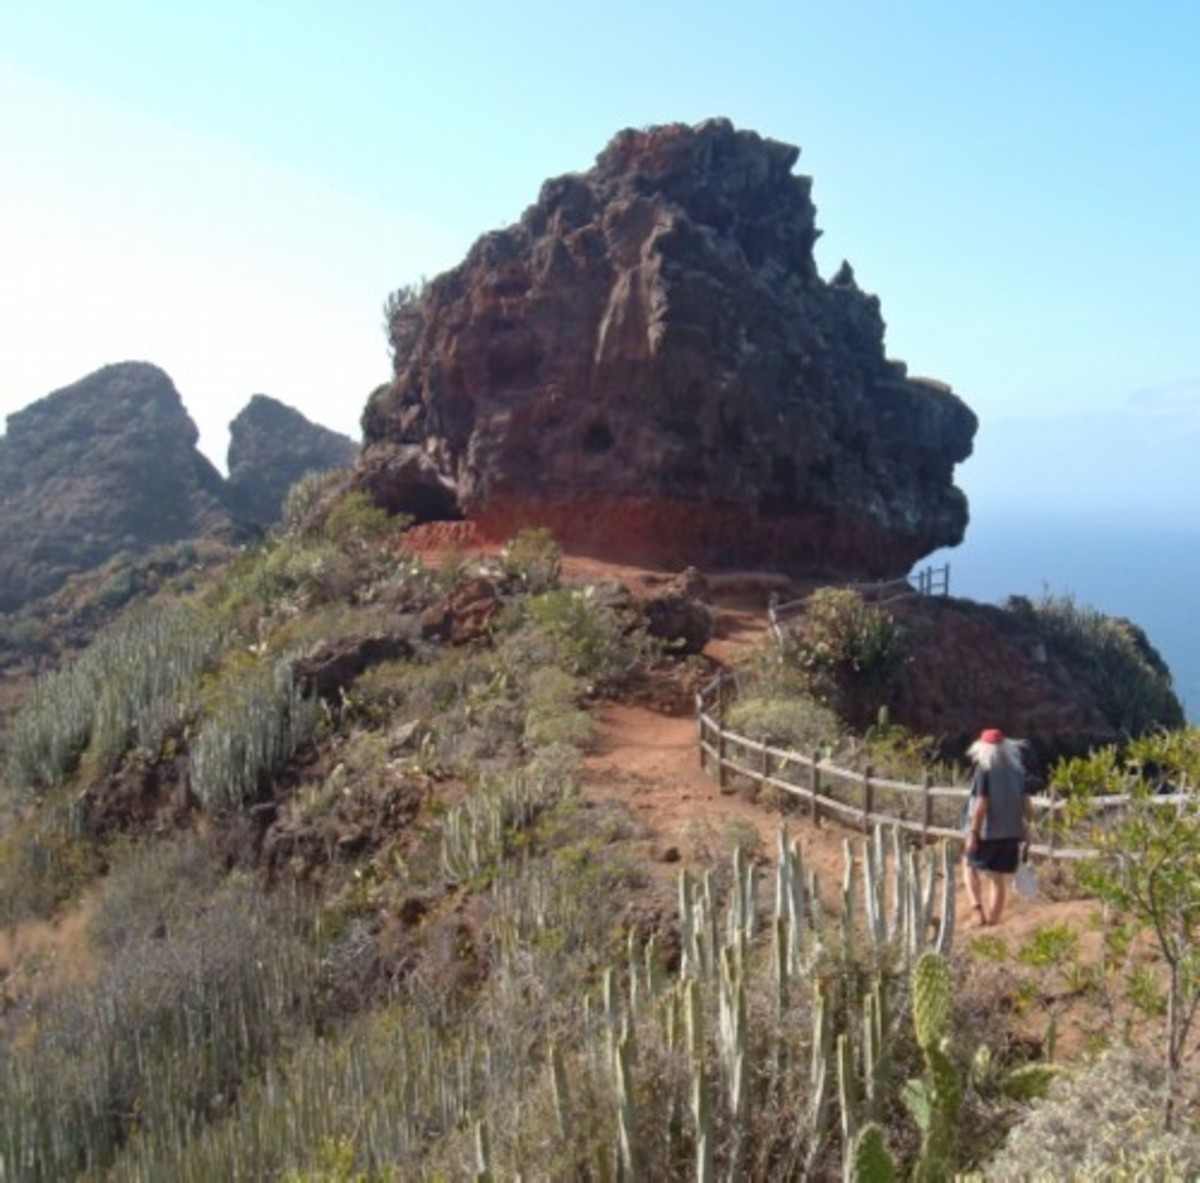 Path to Punta del Hidalgo and its Dos Hermanos rocks. Photo by Steve Andrews